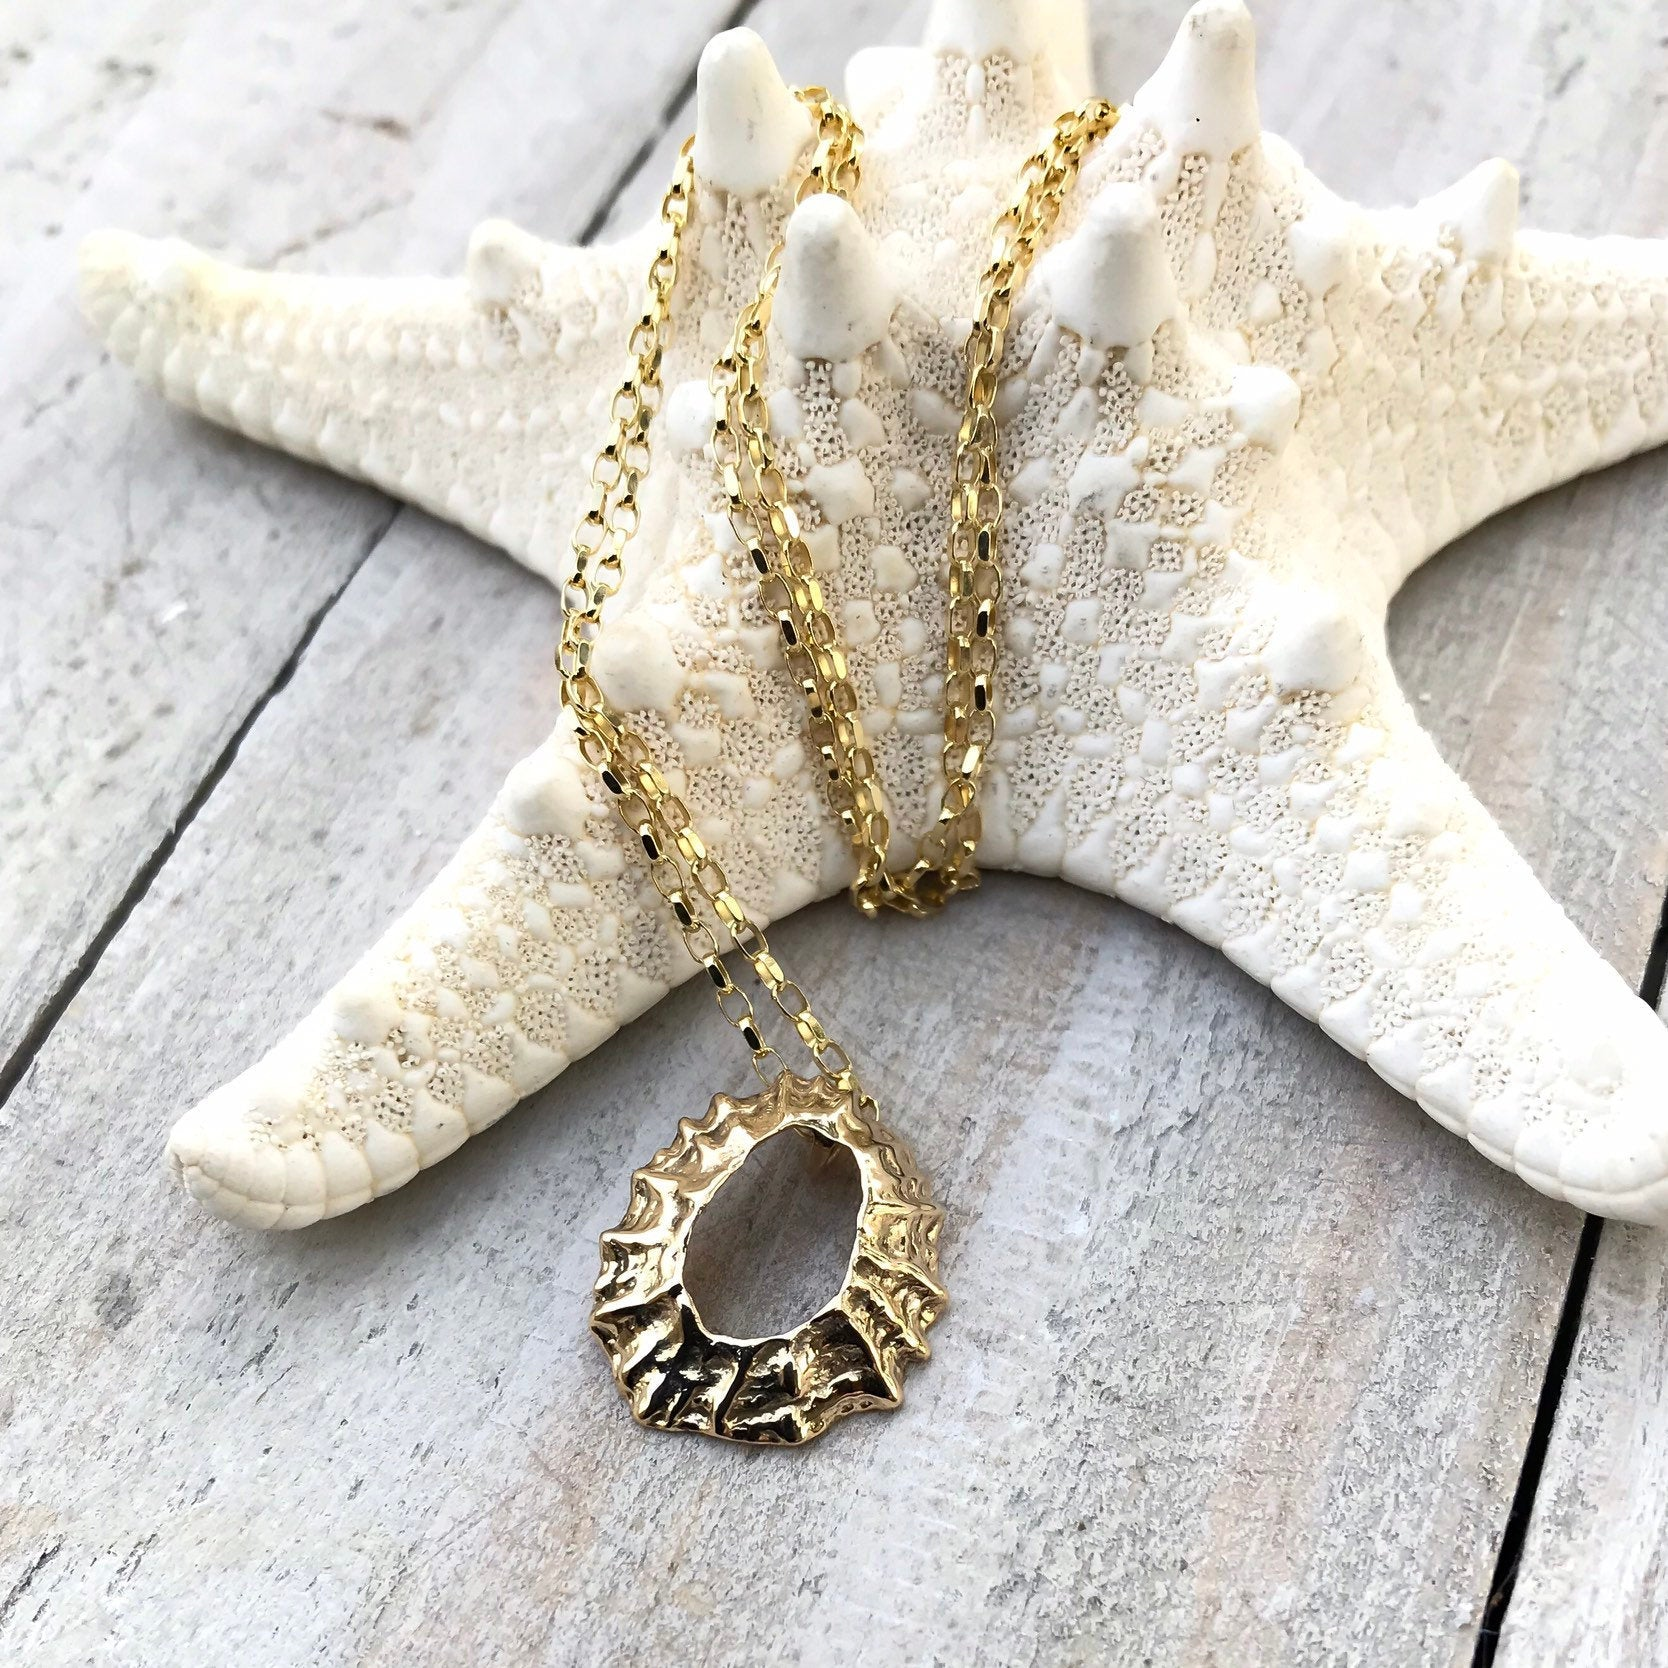 Gold Limpet Shell 'Manx Flitter' Necklace